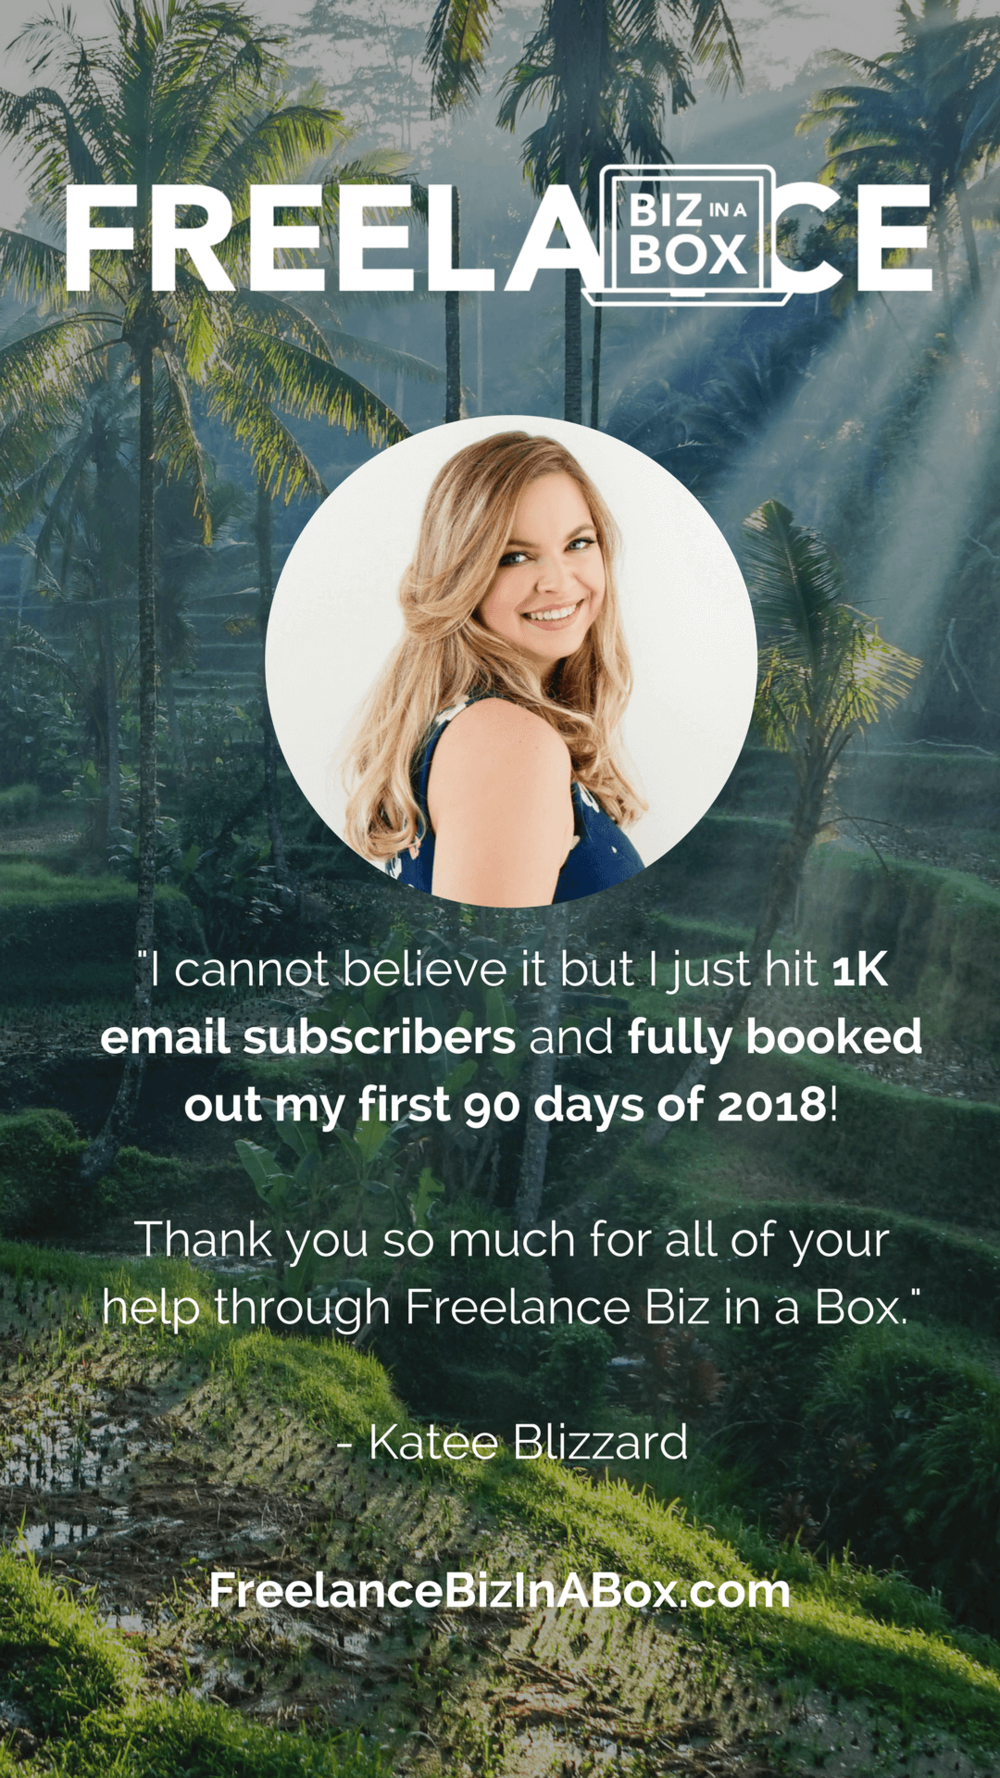 Freelance Biz In A Box - Katee Blizzard